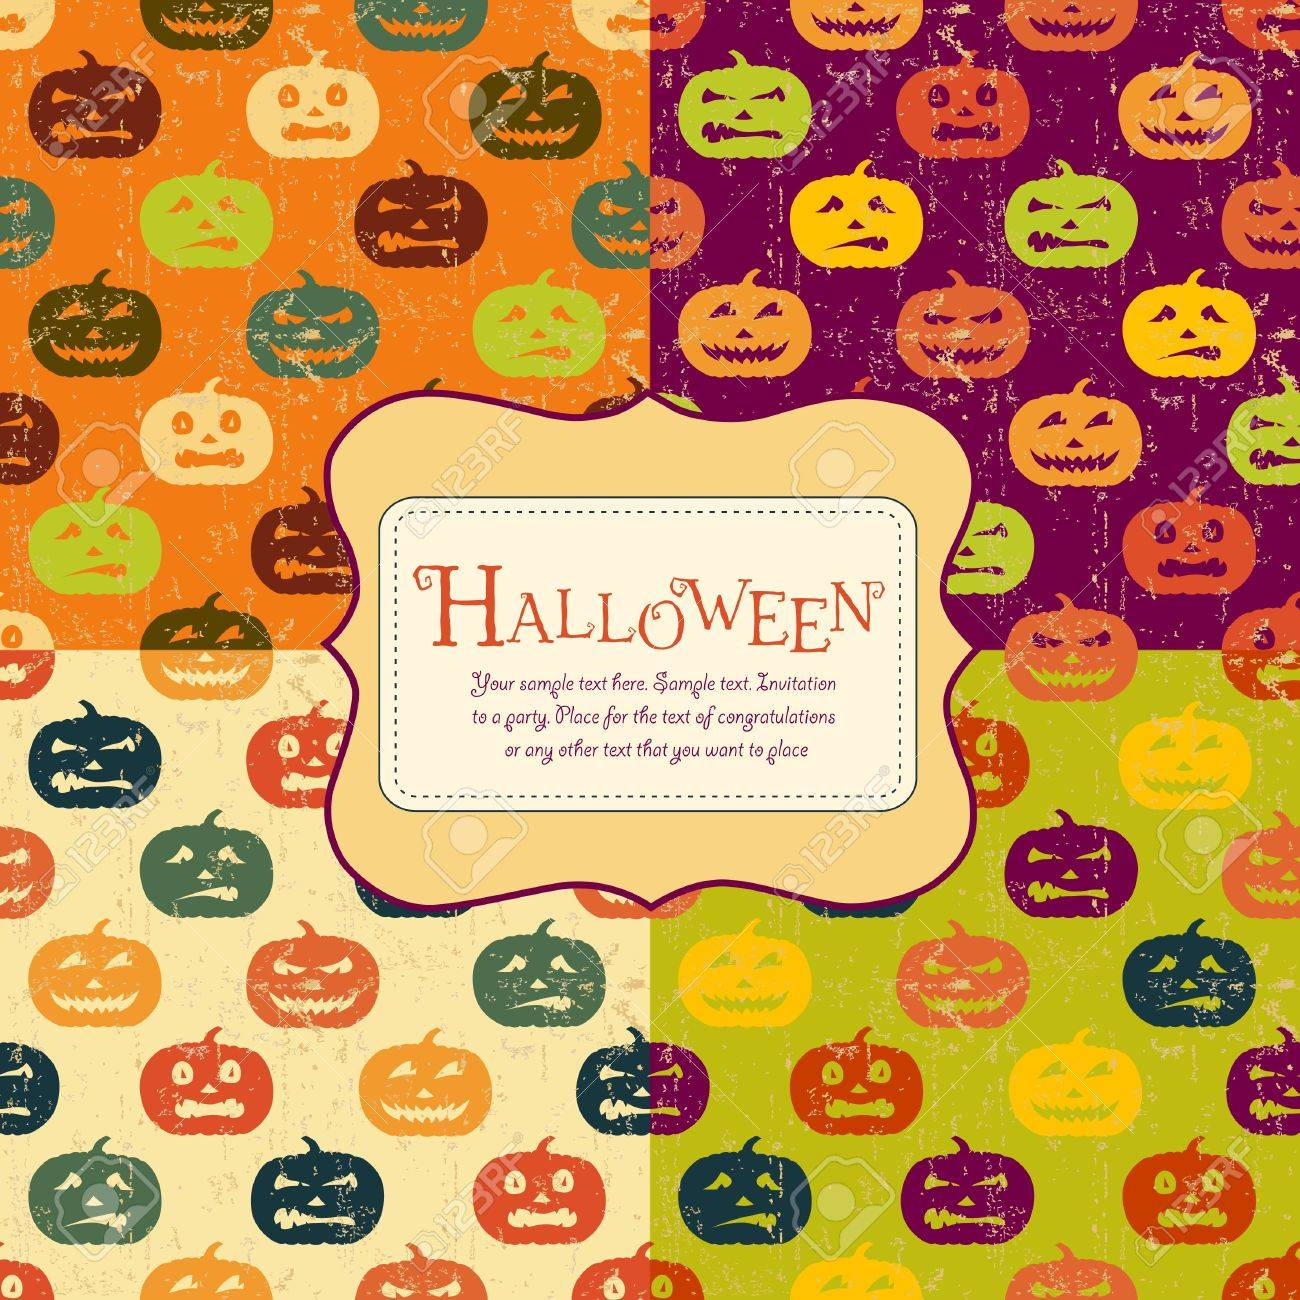 Halloween backgrounds set with tag. Retro pattern. Four colors. Stock Vector - 10970200